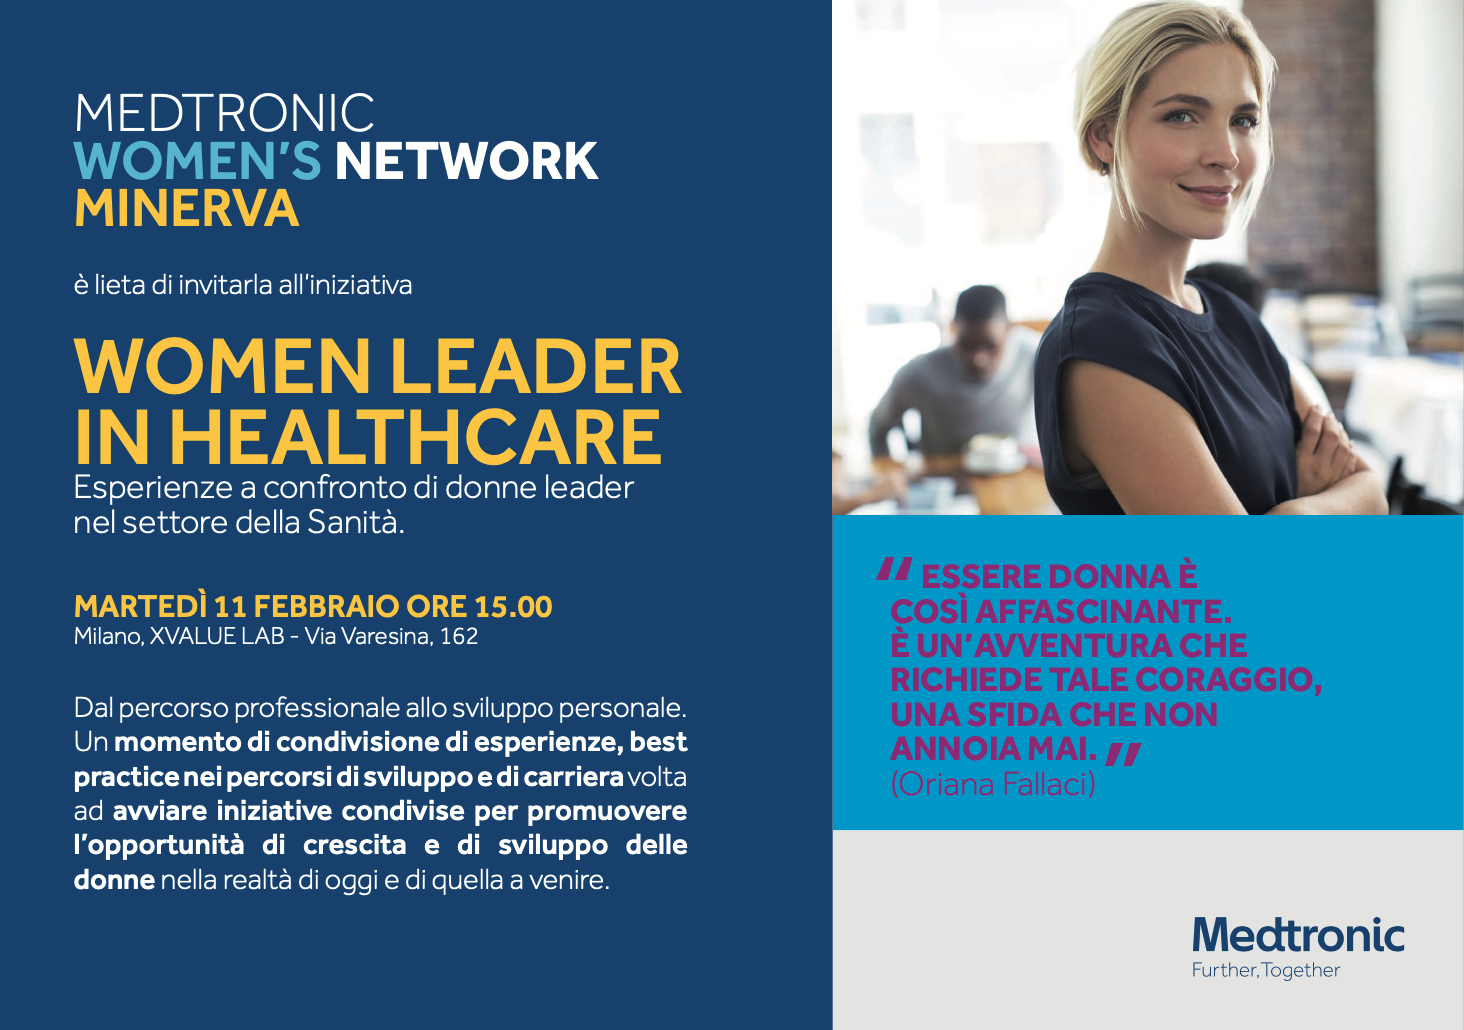 Women Leader in Healthcare